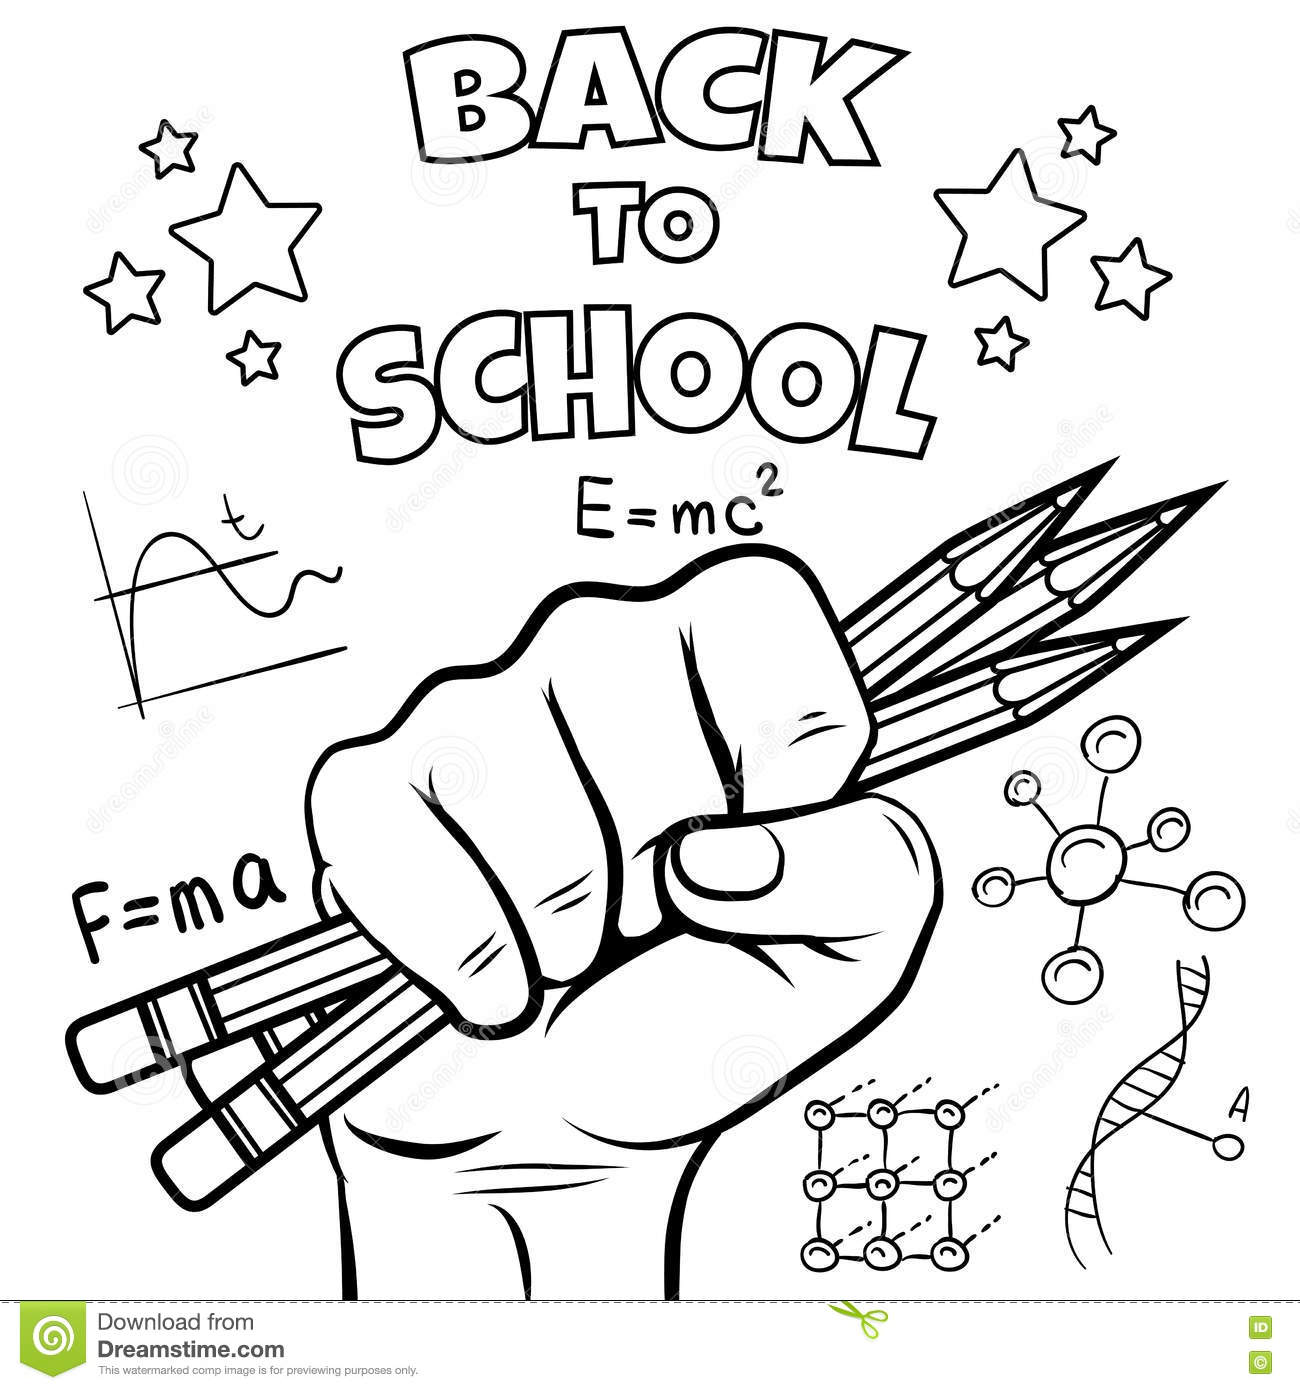 School Children Colouring Page in 2020   School coloring pages ...   1390x1300